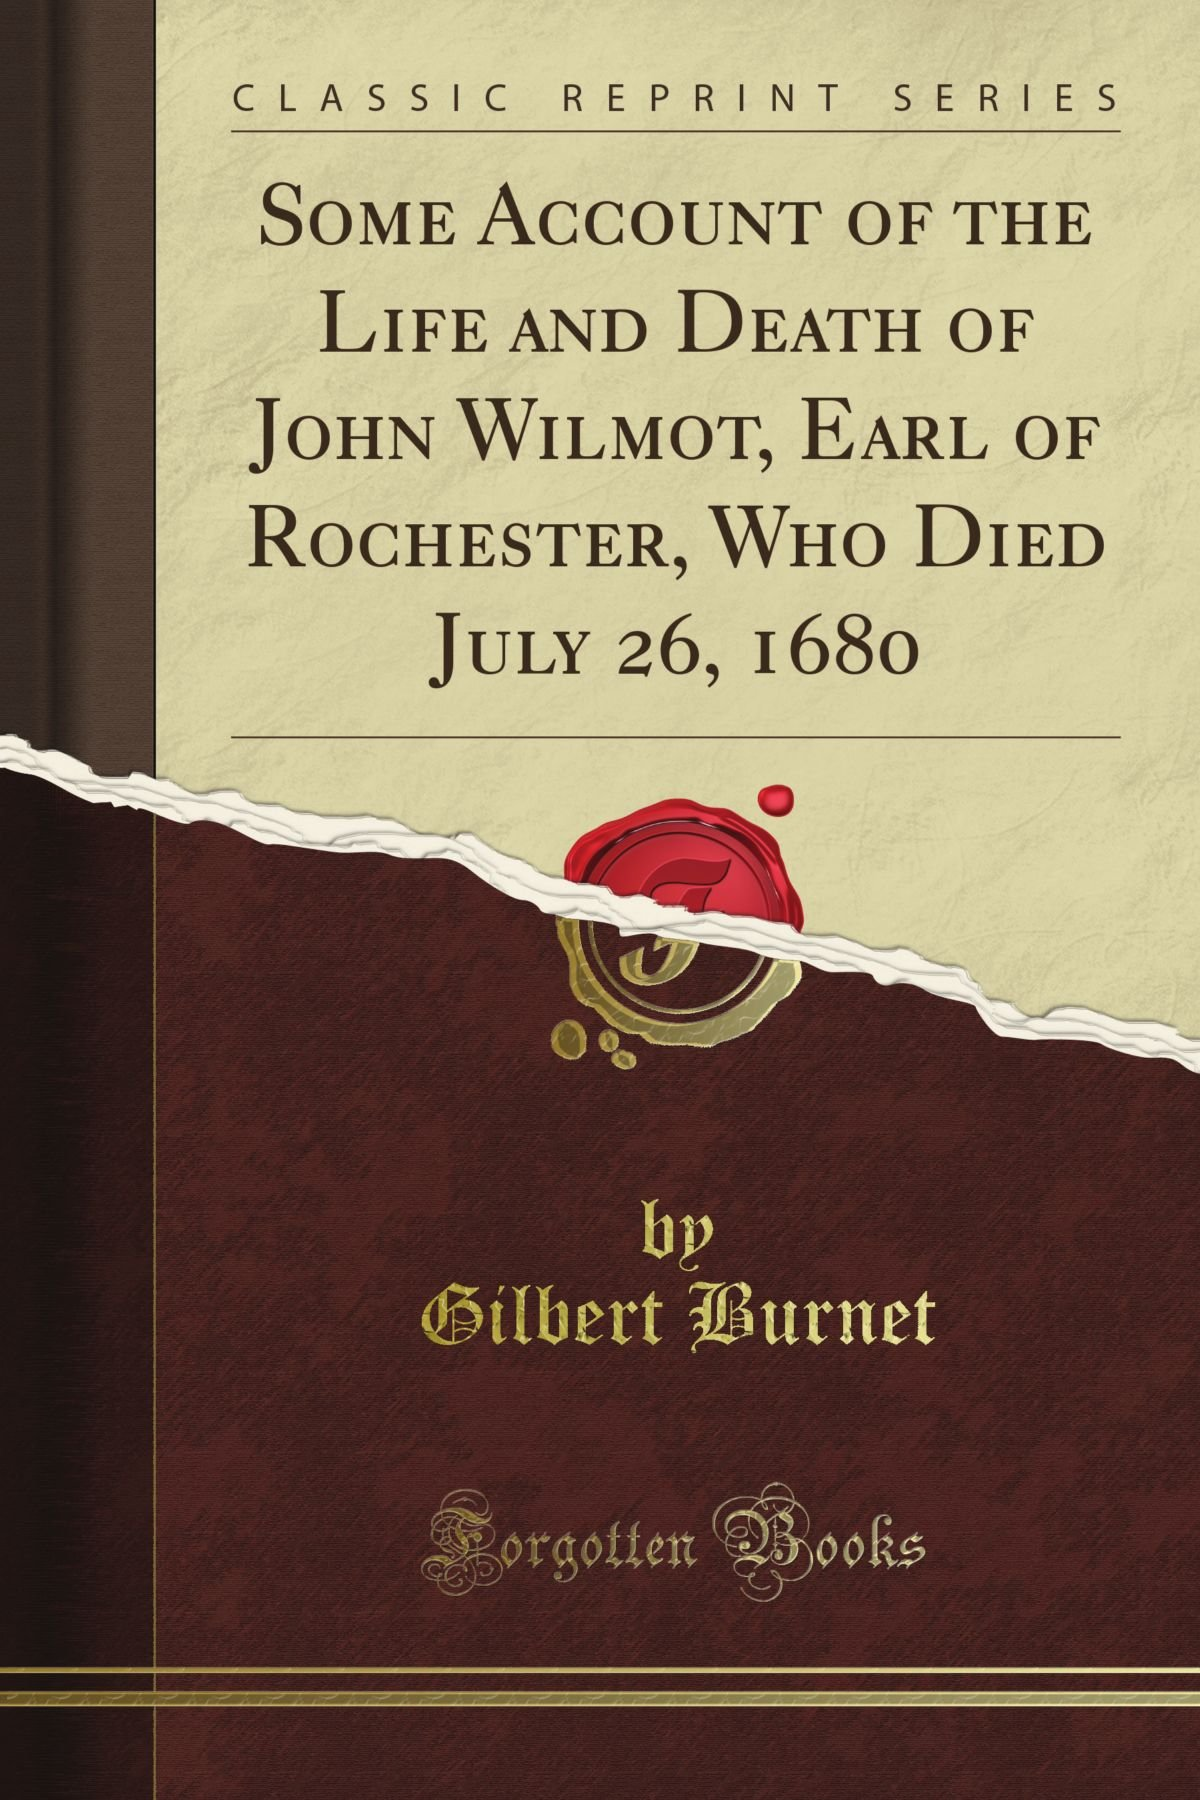 Some Account of the Life and Death of John Wilmot, Earl of Rochester, Who Died July 26, 1680 (Classic Reprint) ebook